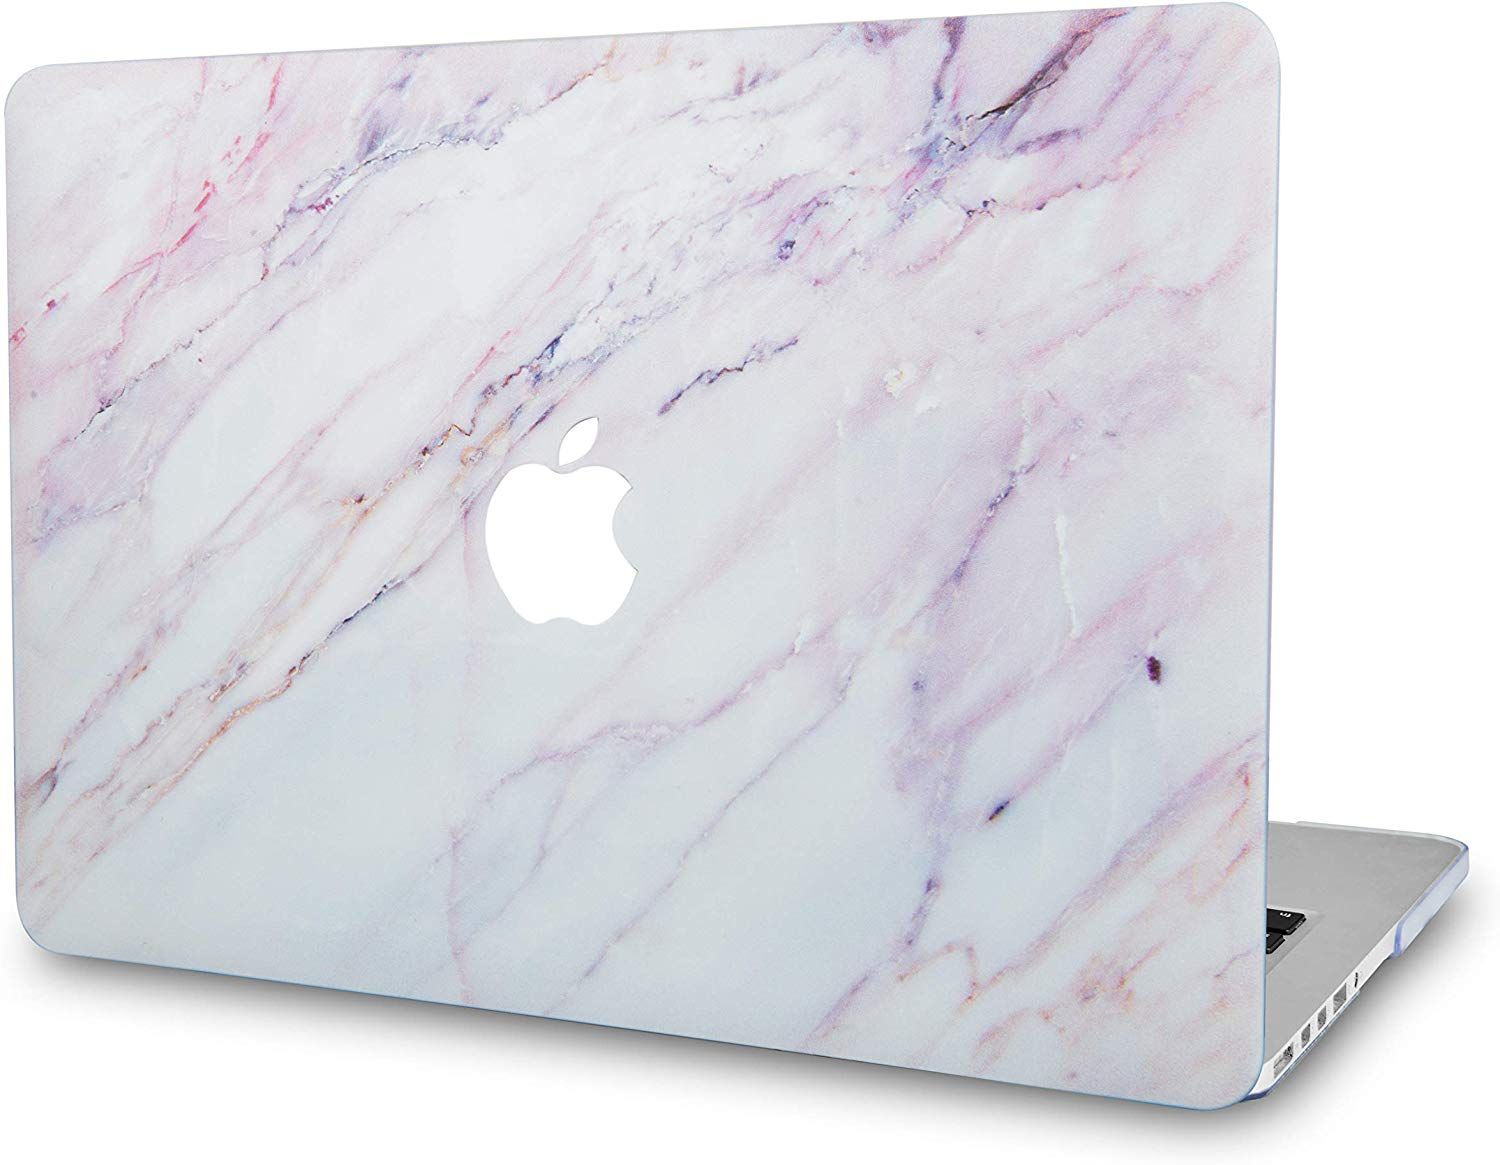 PLEASE READ This MacBook Case Cover Only fits Apple